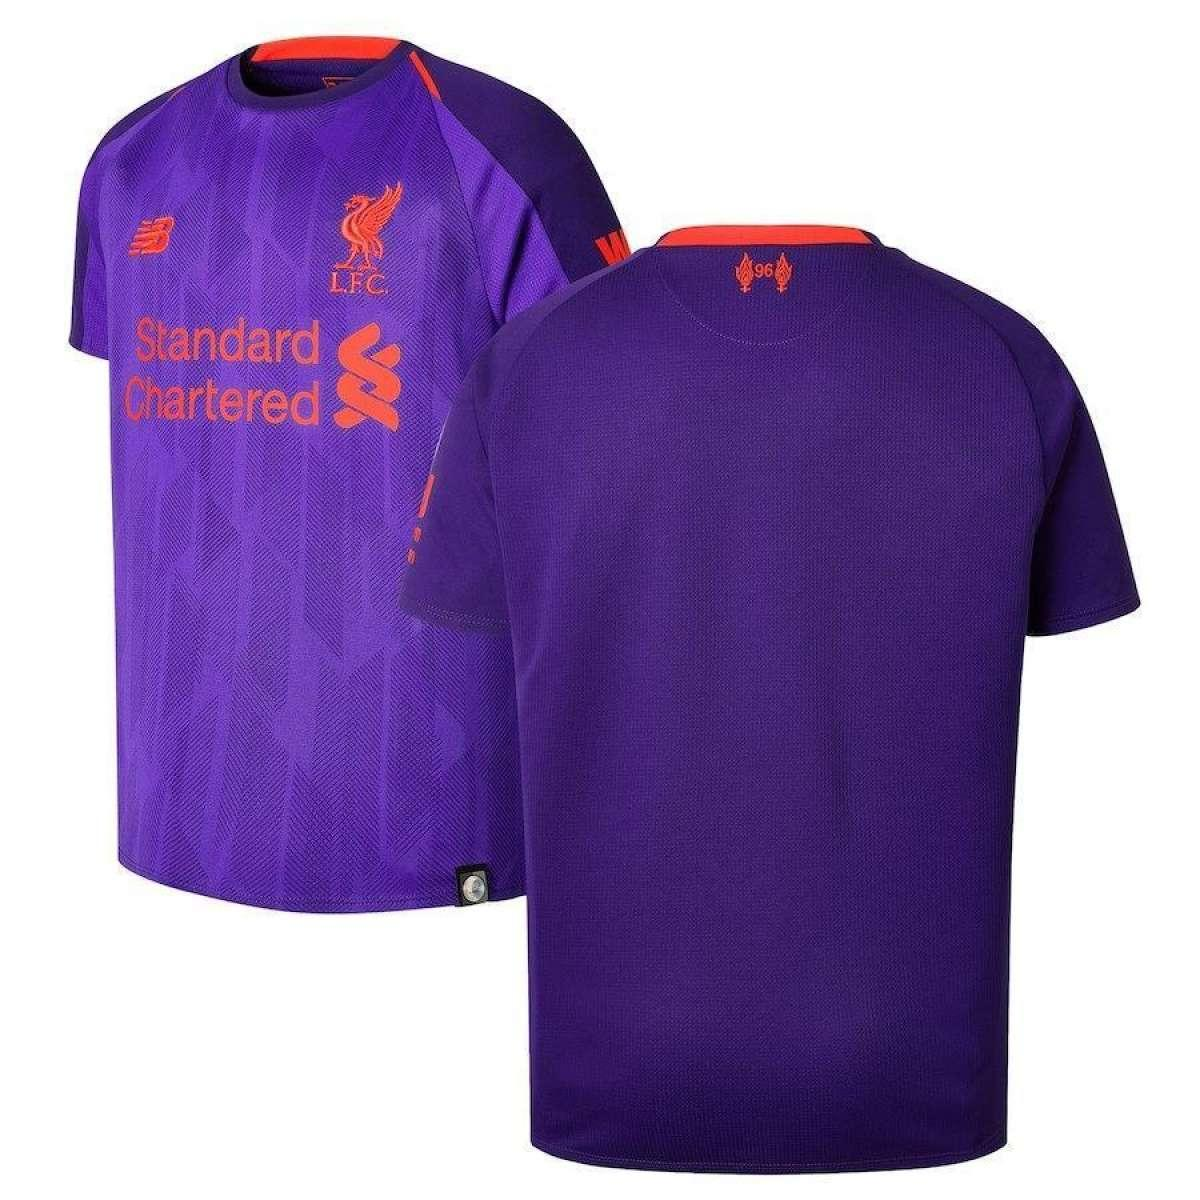 new style 16462 271e9 2018-19 Liverpool Away Short Sleeve Jersey (Thailand) - Purple